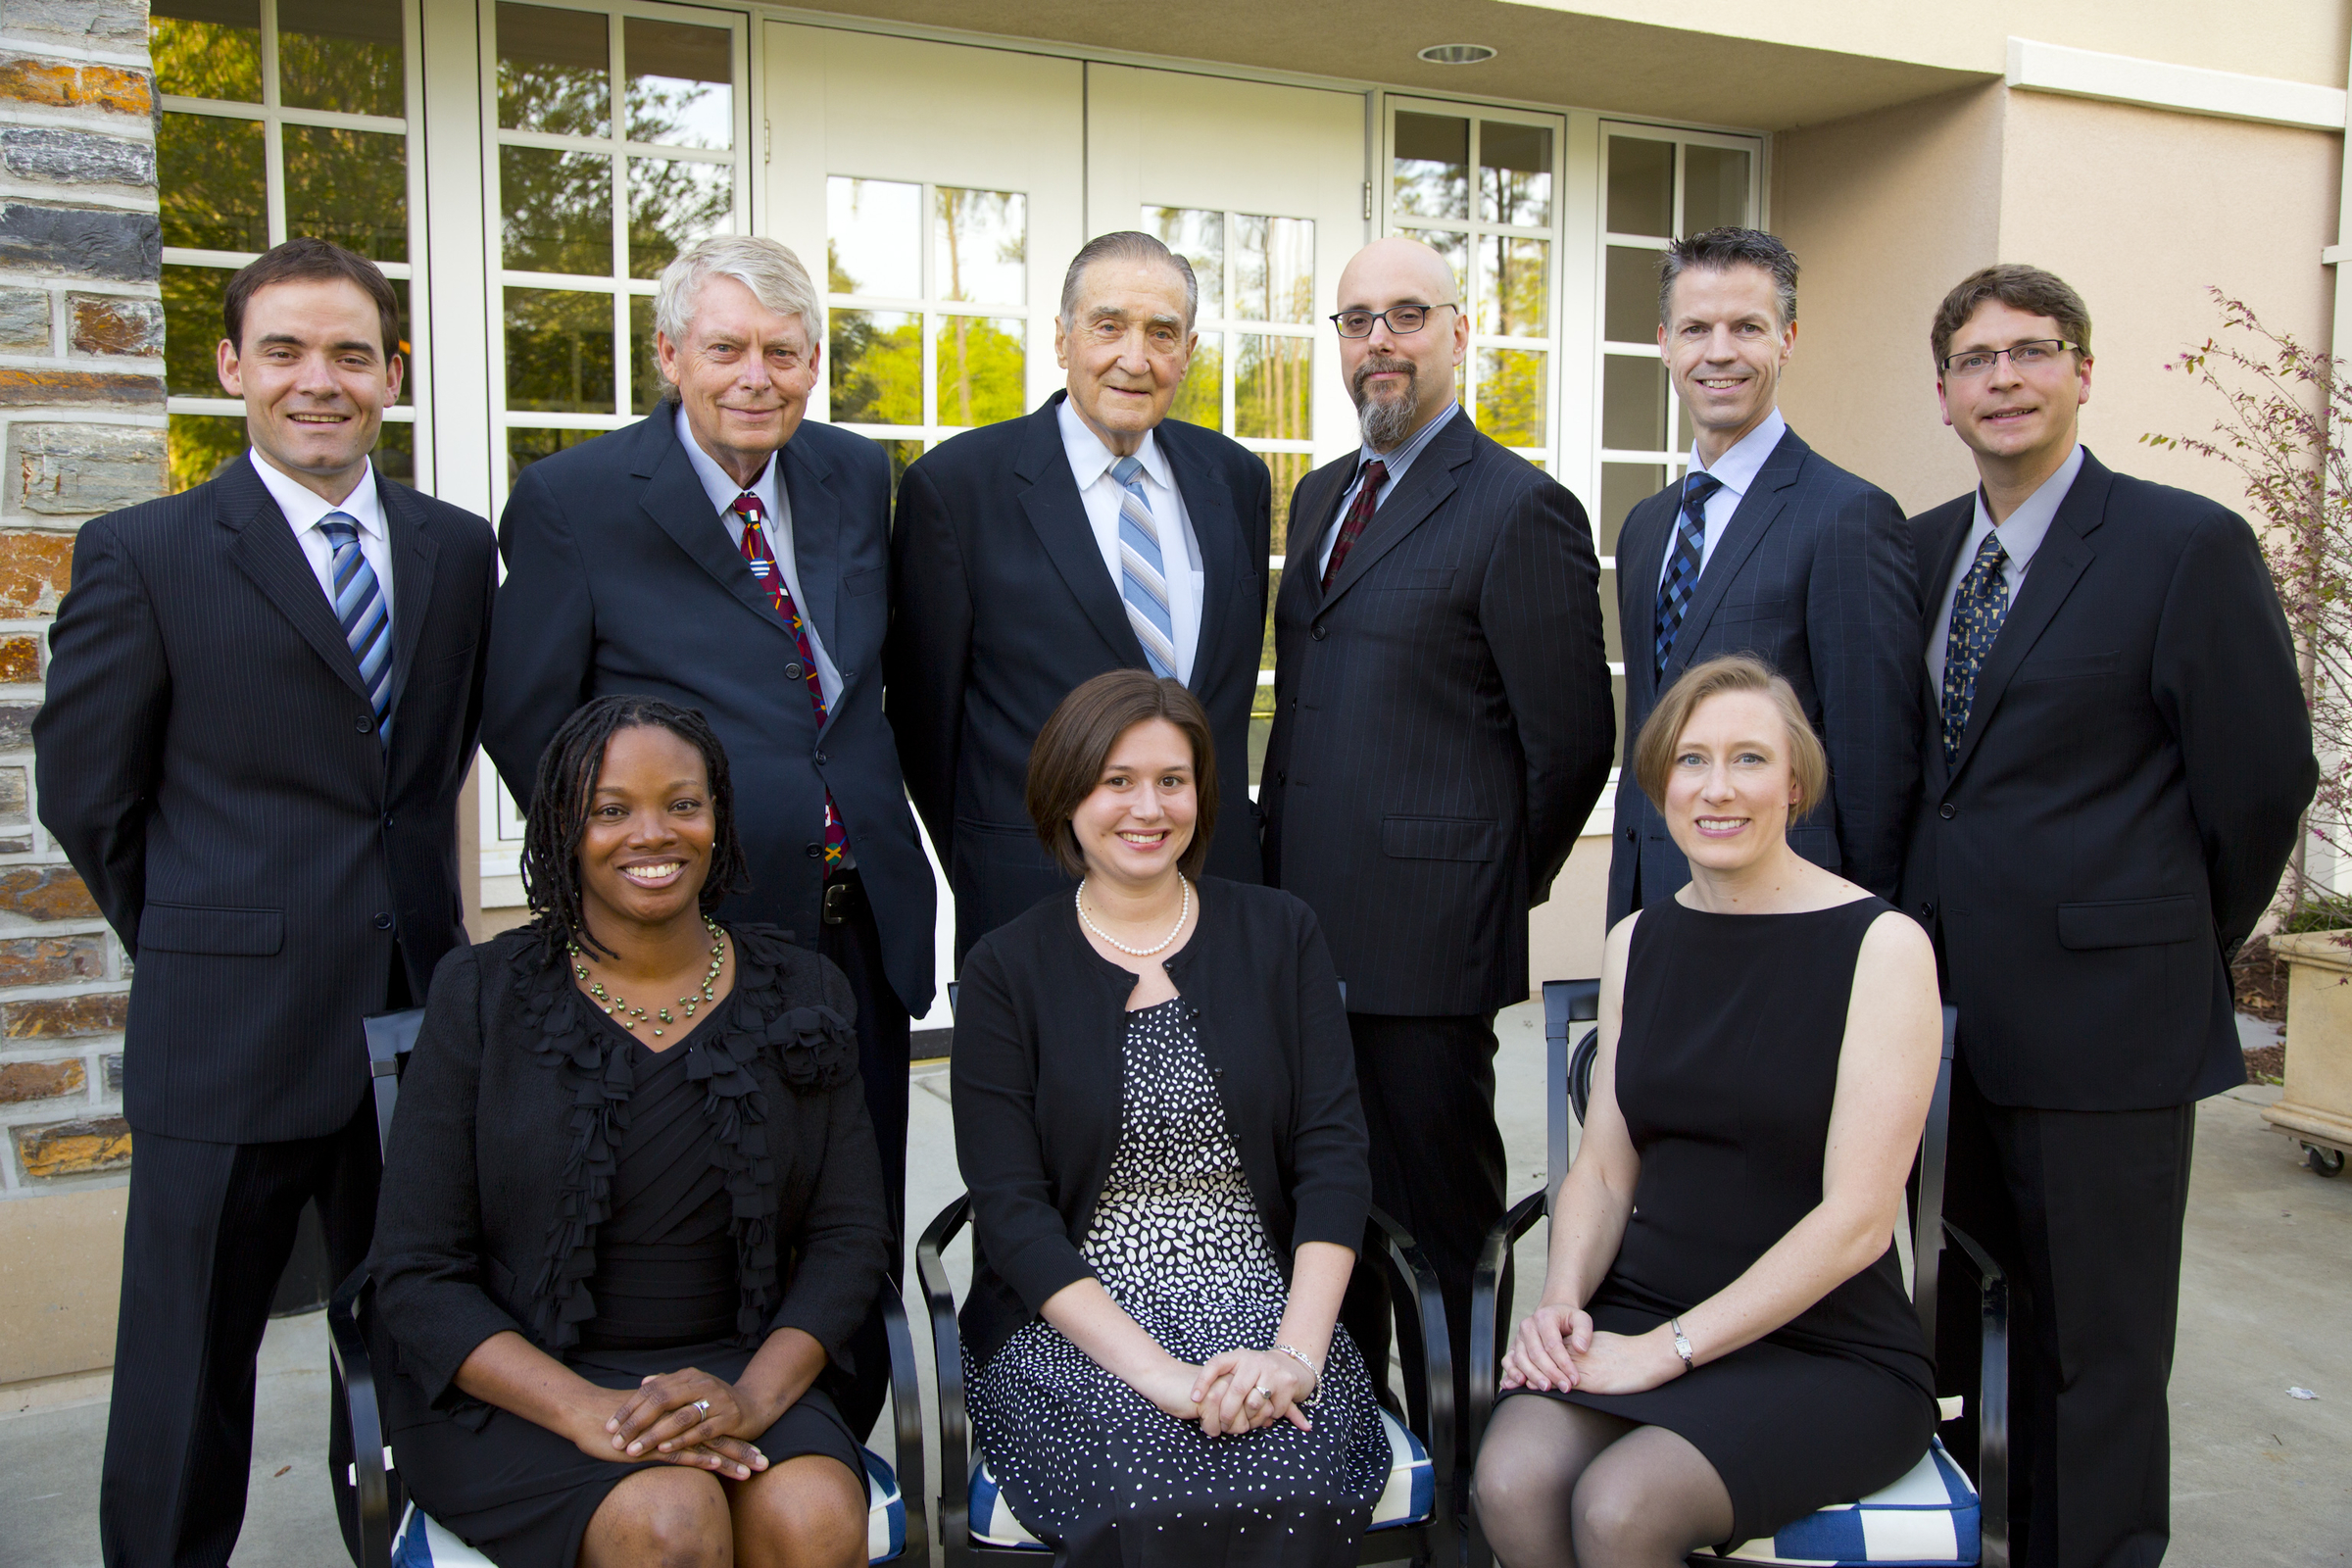 Pictured clockwise from top right are Charles Gersbach, Roger Barr, Edward Koffenberger, Stefano Curtarolo, Michael Hill, Nicholas Millington, Lisa Huettel, Rebecca Dupre, La Tondra Murray